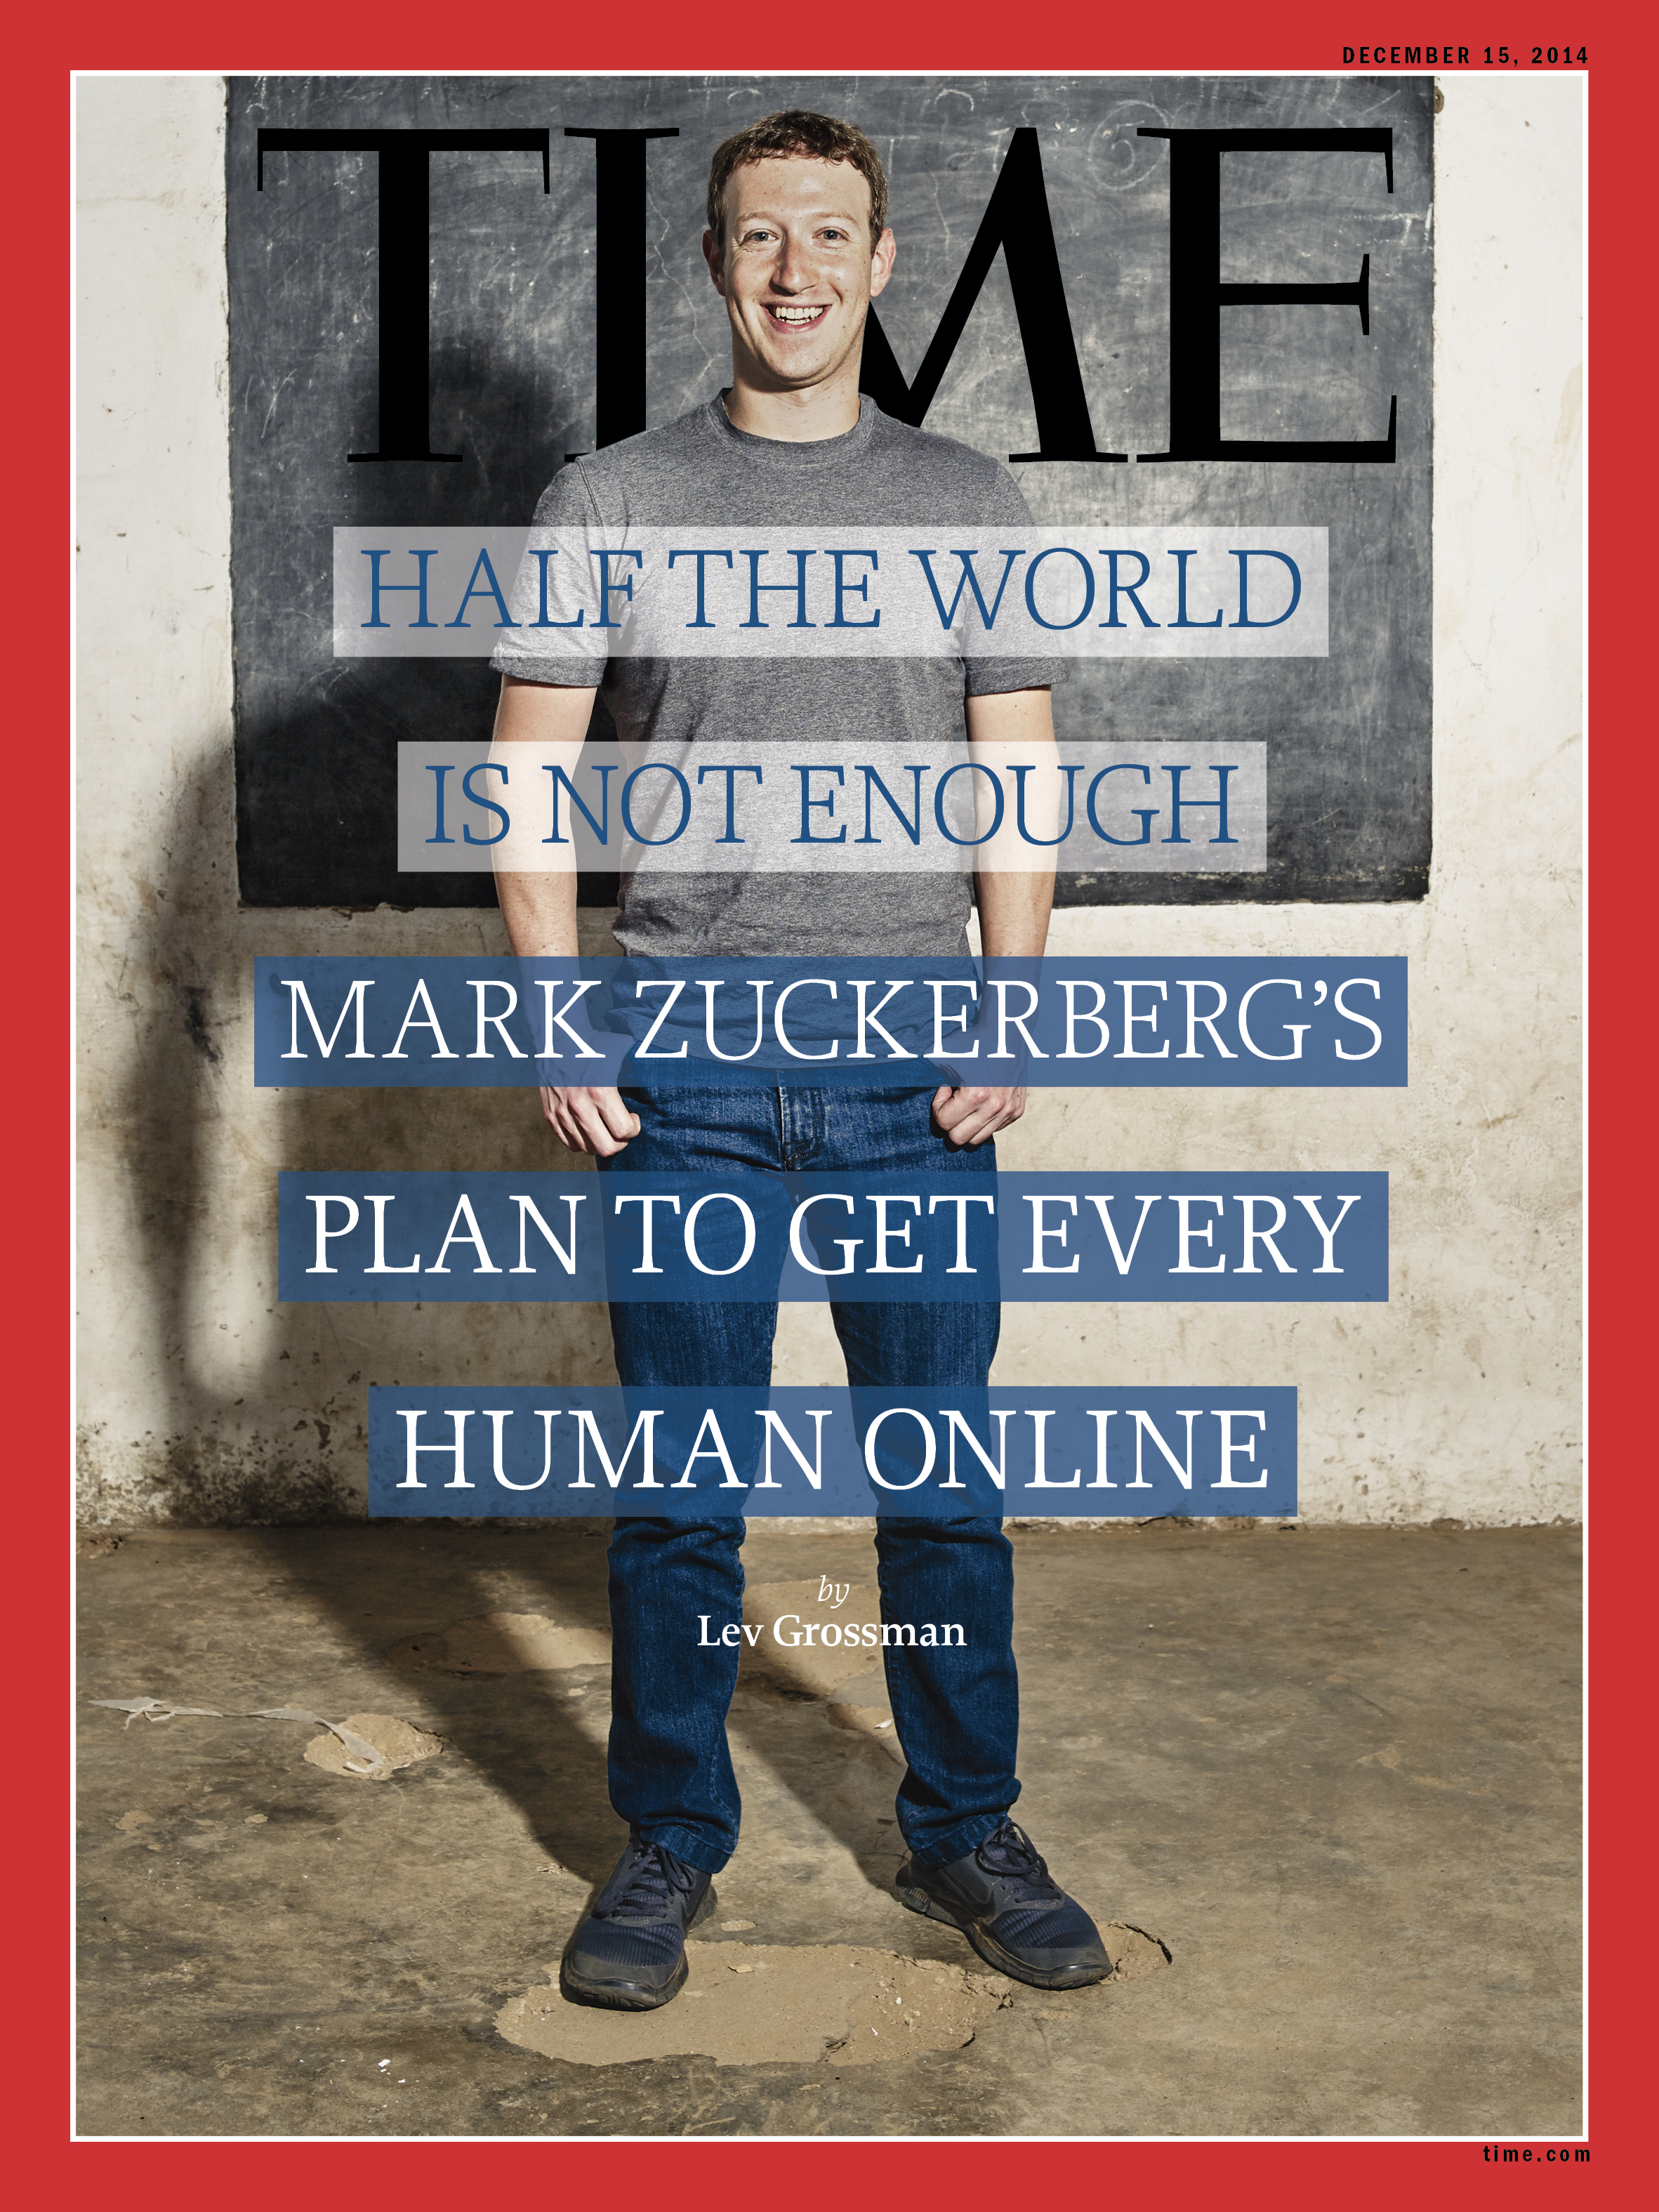 Facebook's Mark Zuckerberg on TIME Magazine's cover